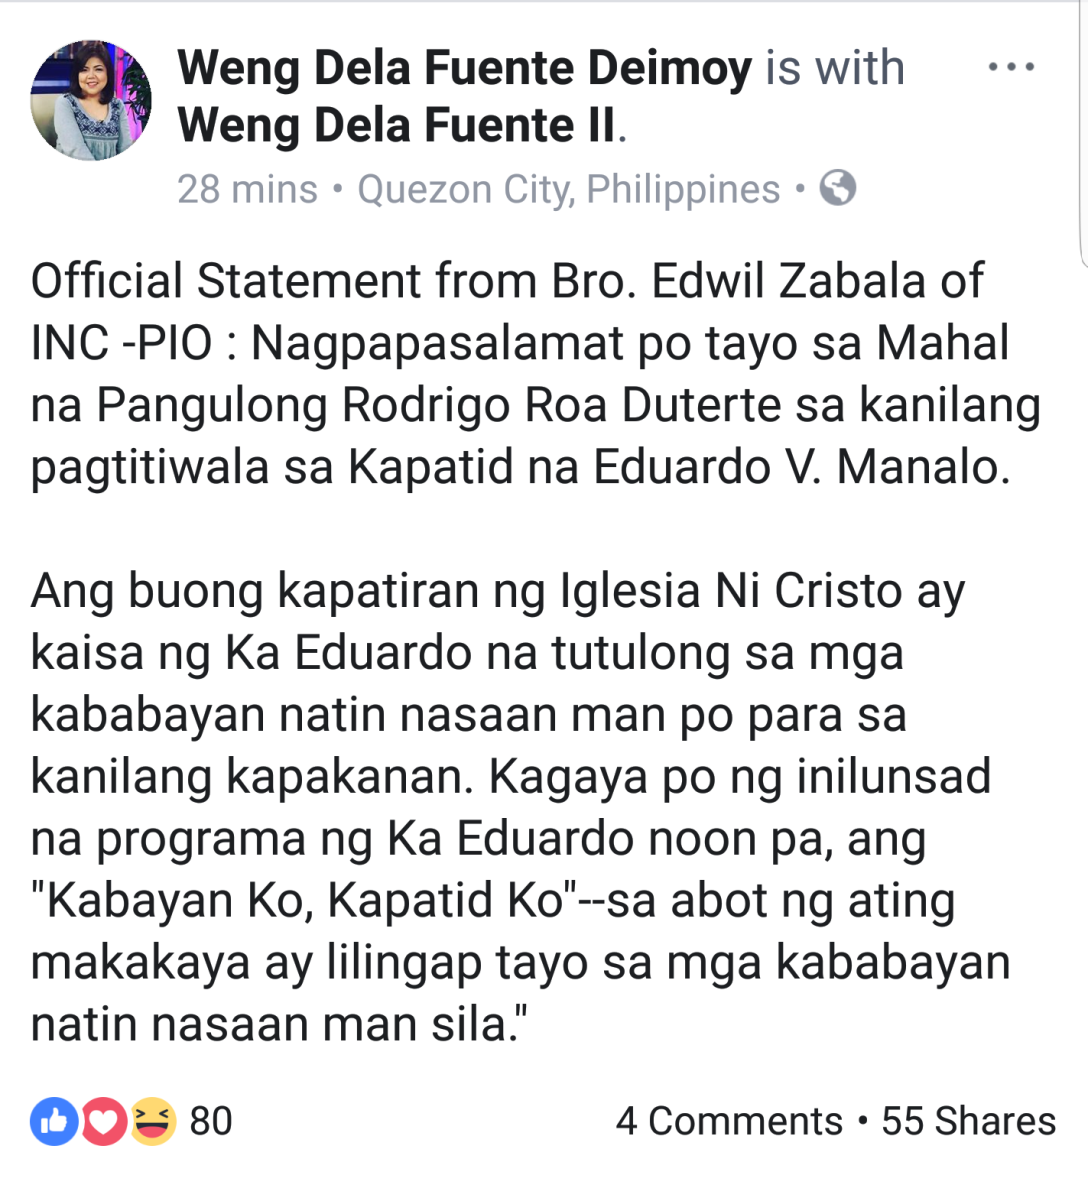 Official Statement of Edwil Zabala by Weng Dela Fuente